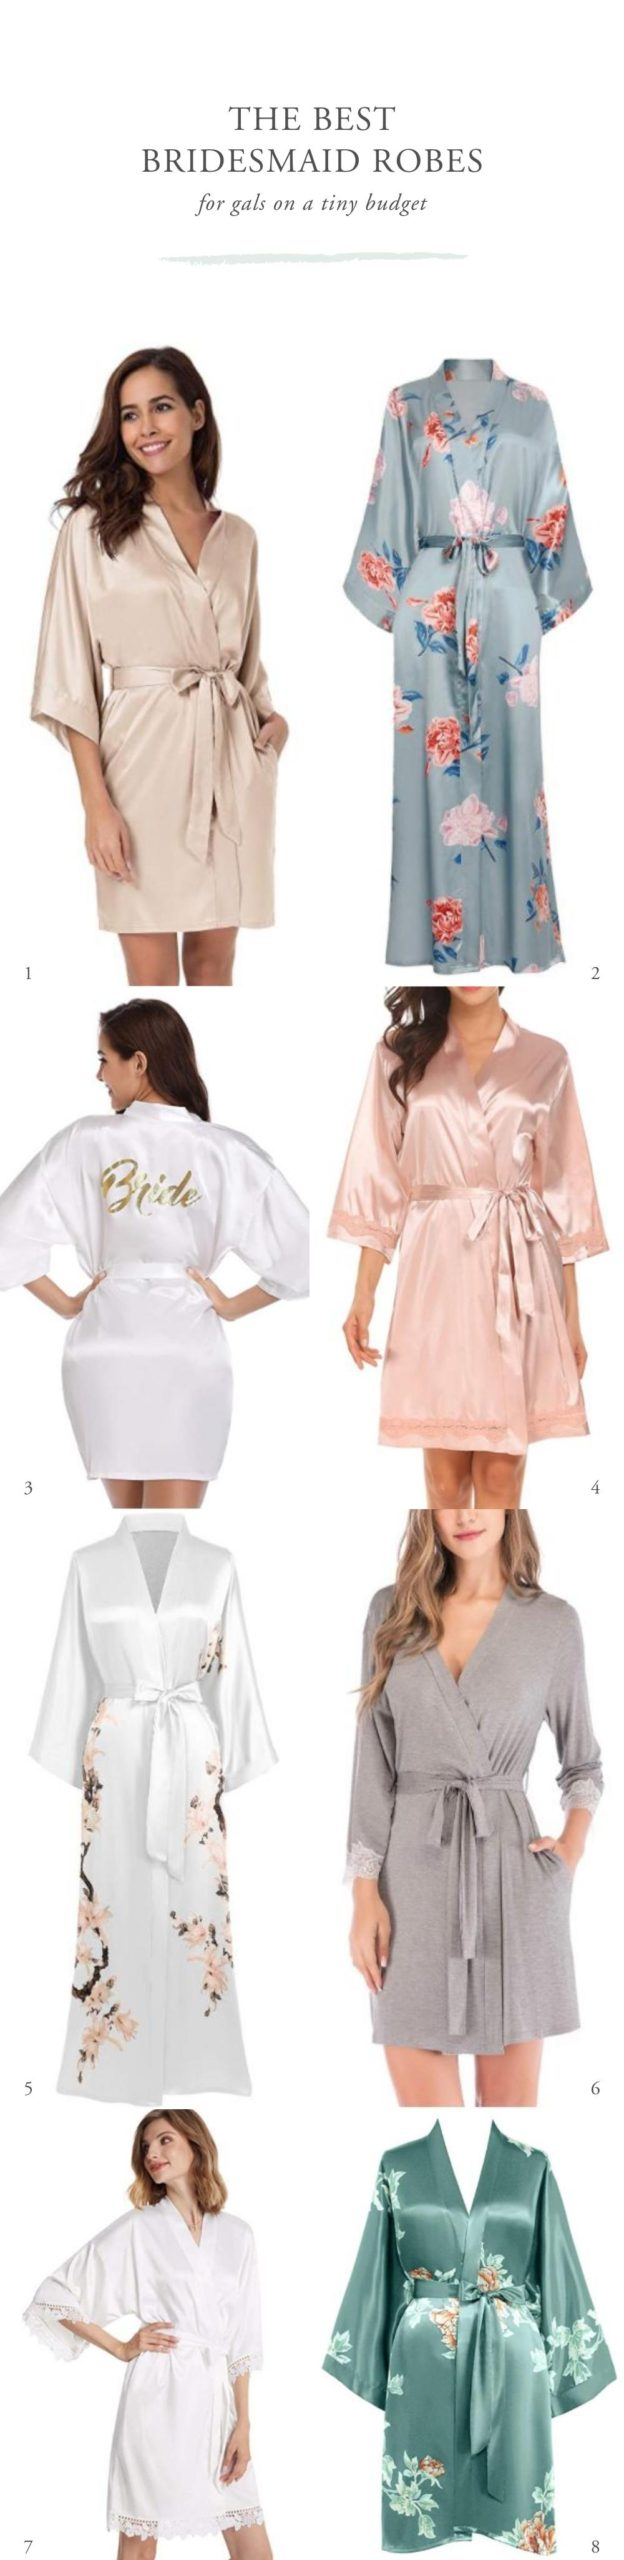 The Best Bridesmaid Robes For Cheap Pipkin Paper Company